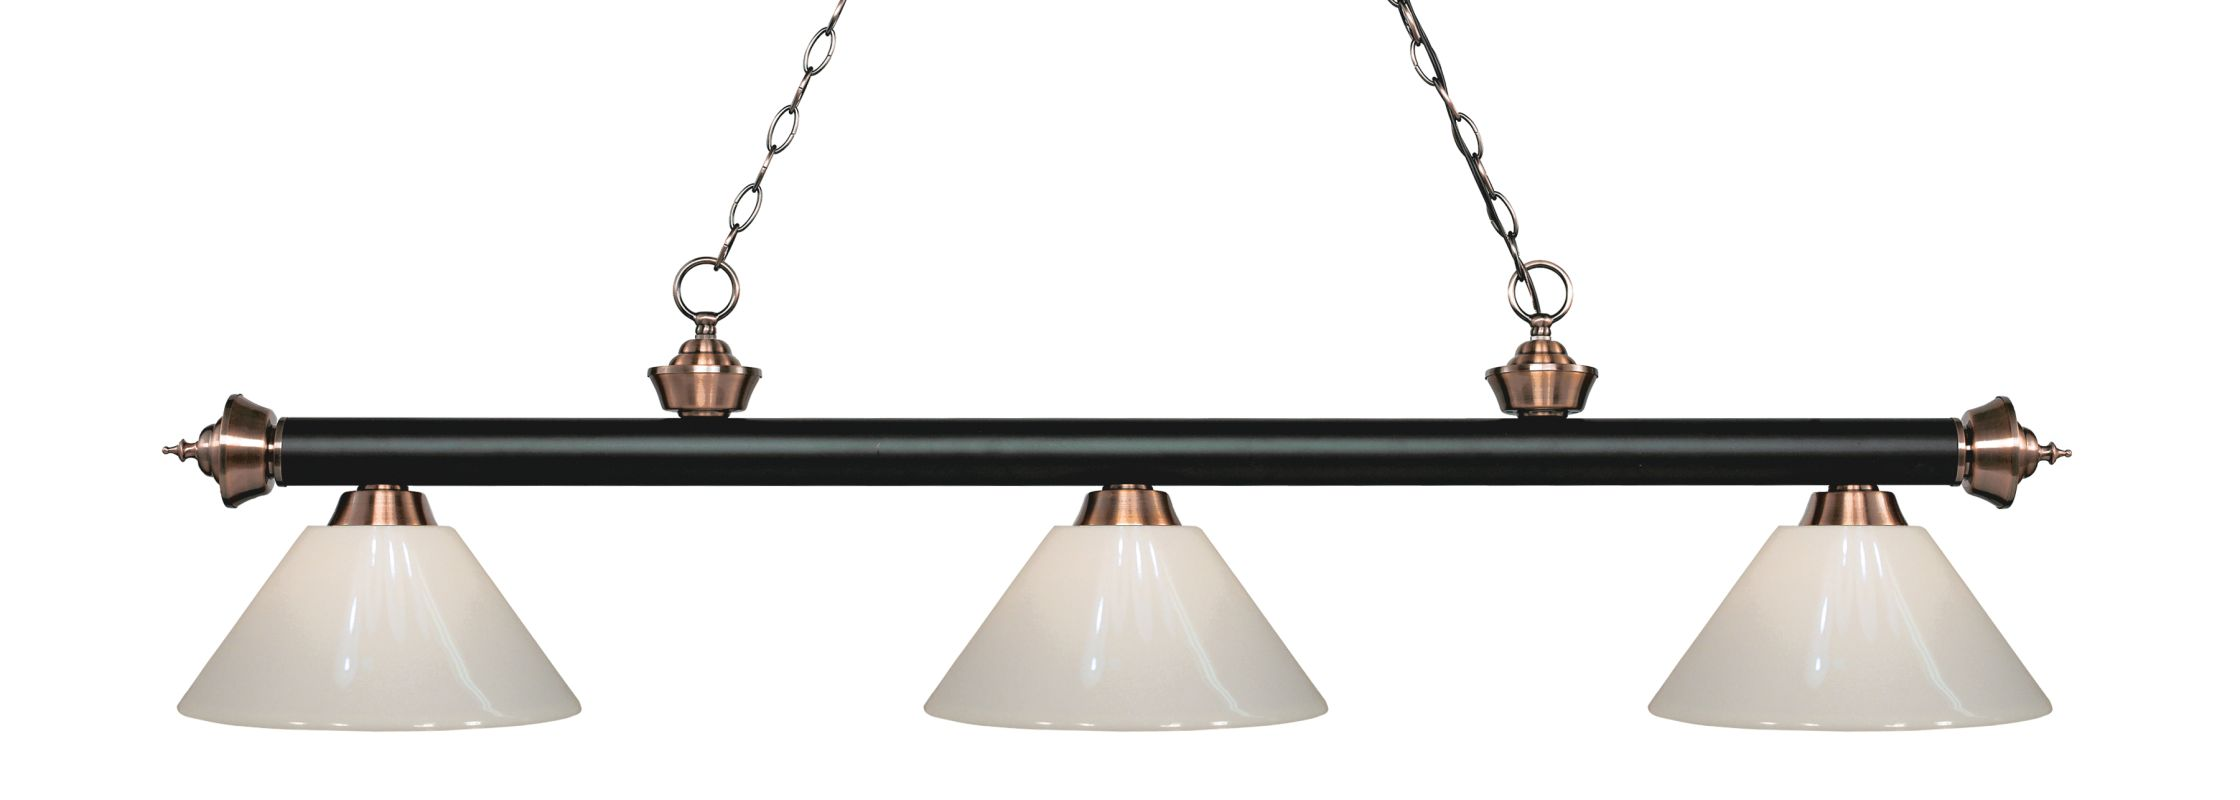 Z-Lite 200-3-PWH Riviera 3 Light Island/Billiard Chandelier with White Sale $296.00 ITEM: bci2734553 ID#:200-3MB+AC-PWH UPC: 685659053388 :